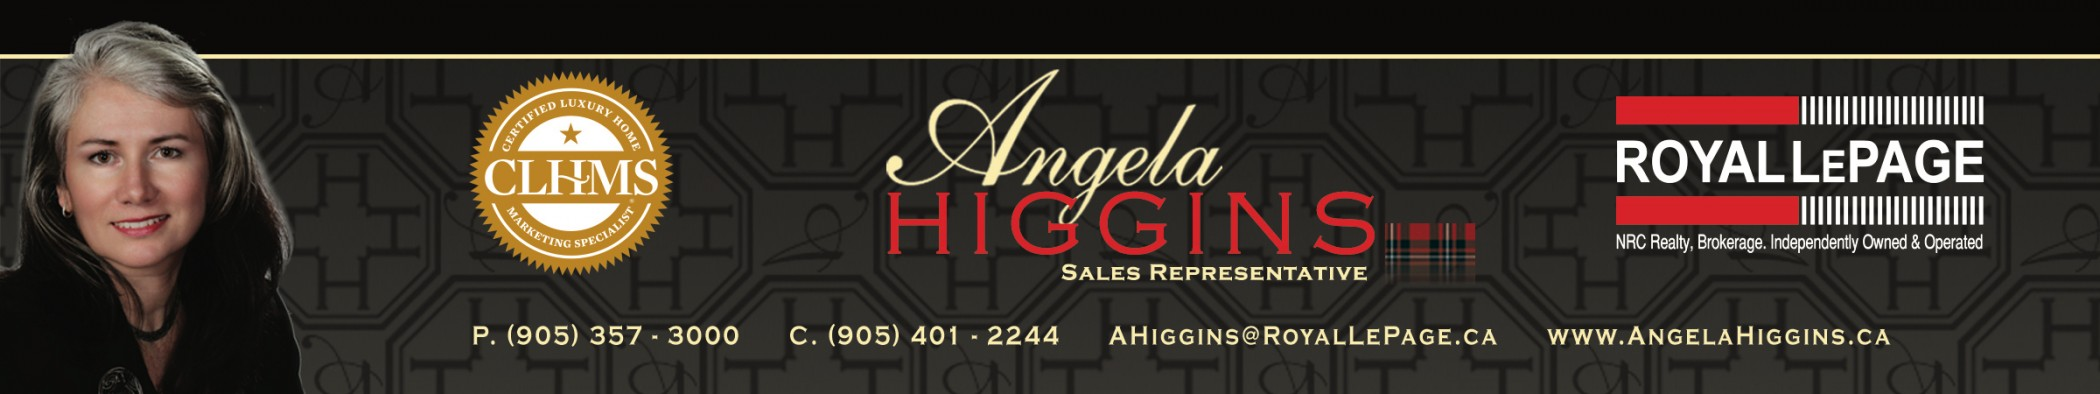 Angela Higgins - Niagara Region Real Estate